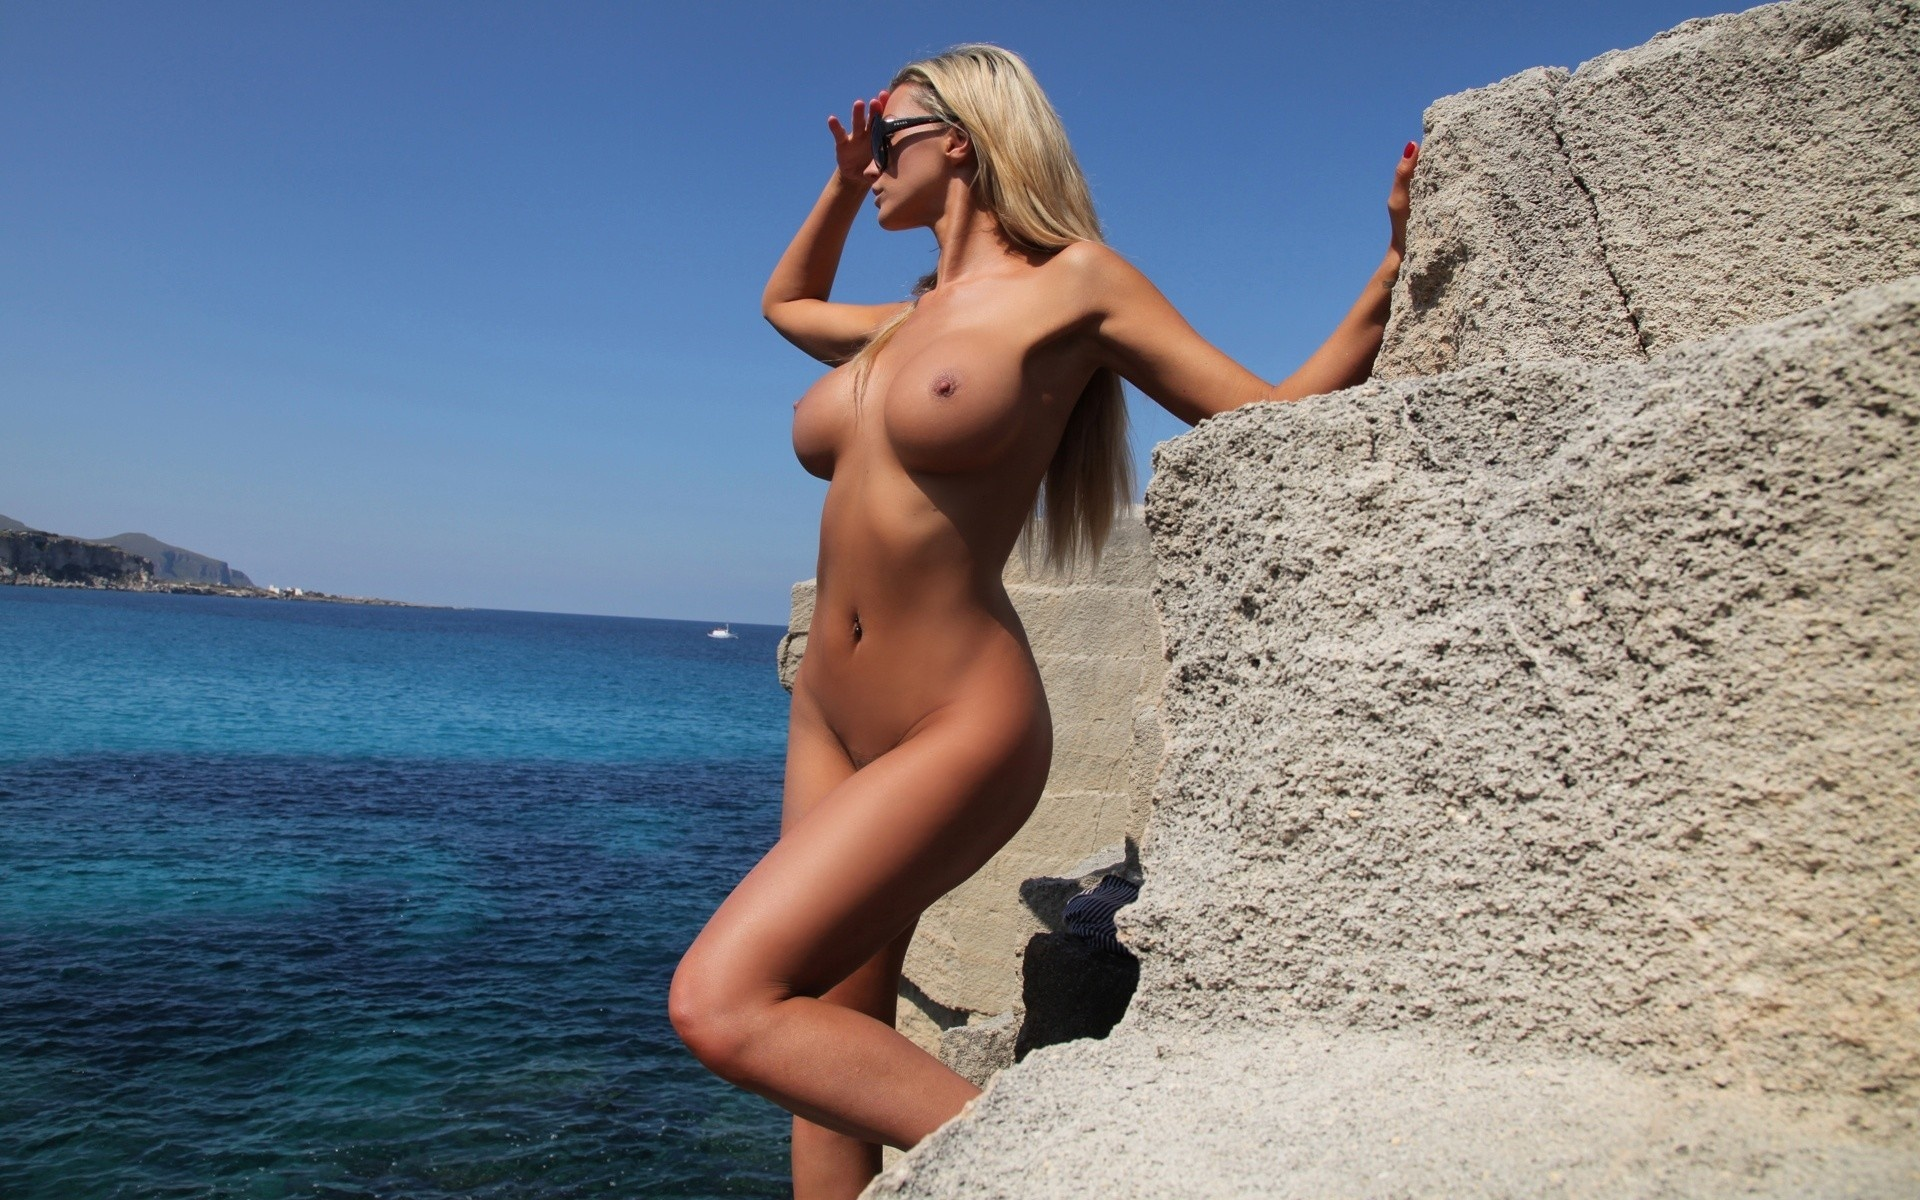 Question Naked women with huge tits on beach